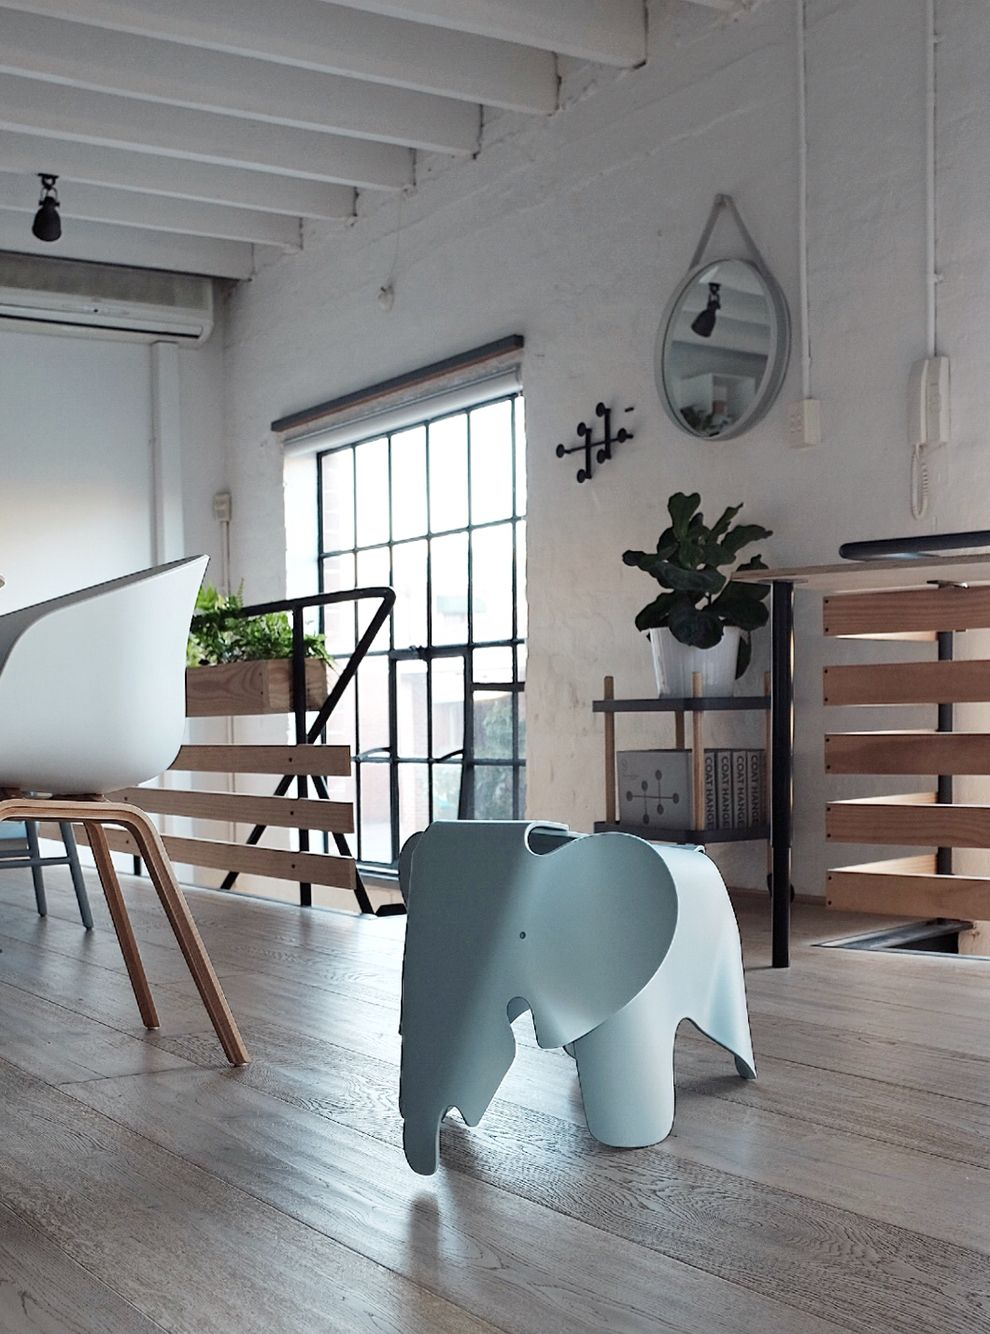 Vitra Olifant Can We Please Talk About The Elephant In The Room The Vitra Eames